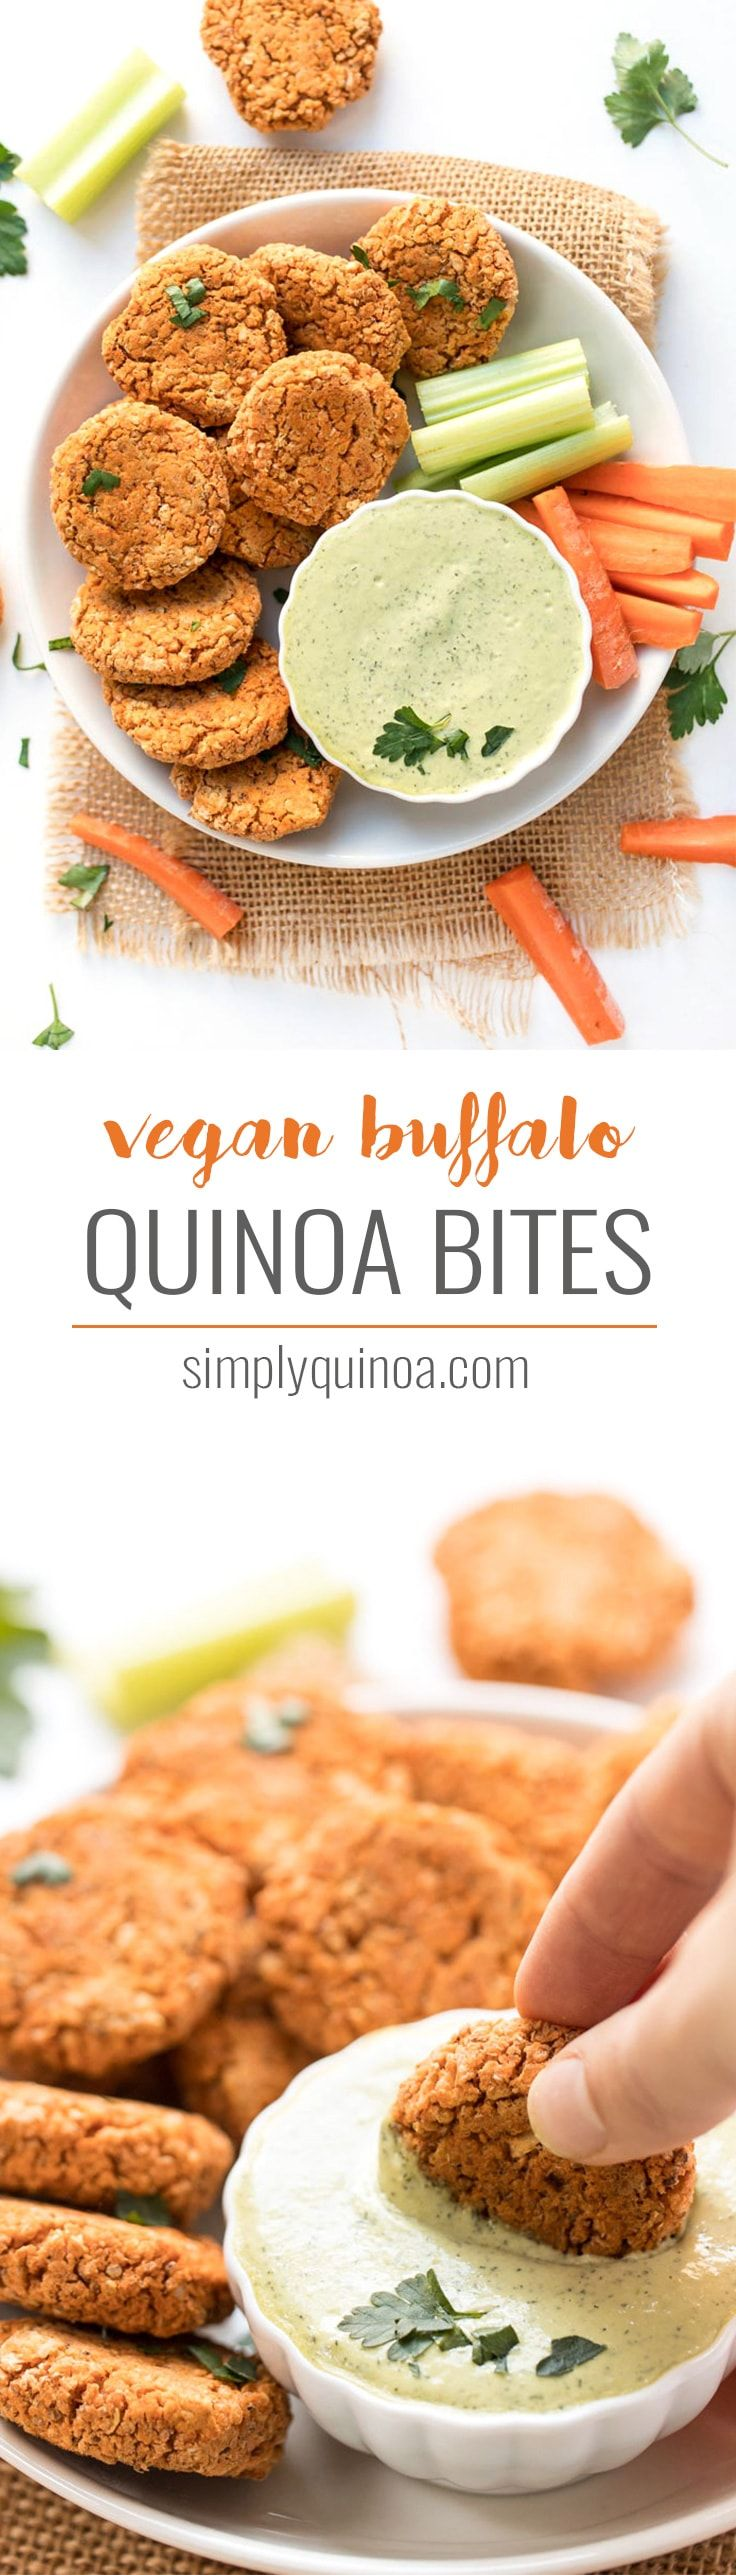 These simple VEGAN BUFFALO quinoa bites are a quick and healthy appetizer or snack, and are perfect for parties! Served with a creamy ranch dipping too! #veganrecipes #quinoabites #quinoarecipes #simplyquinoa